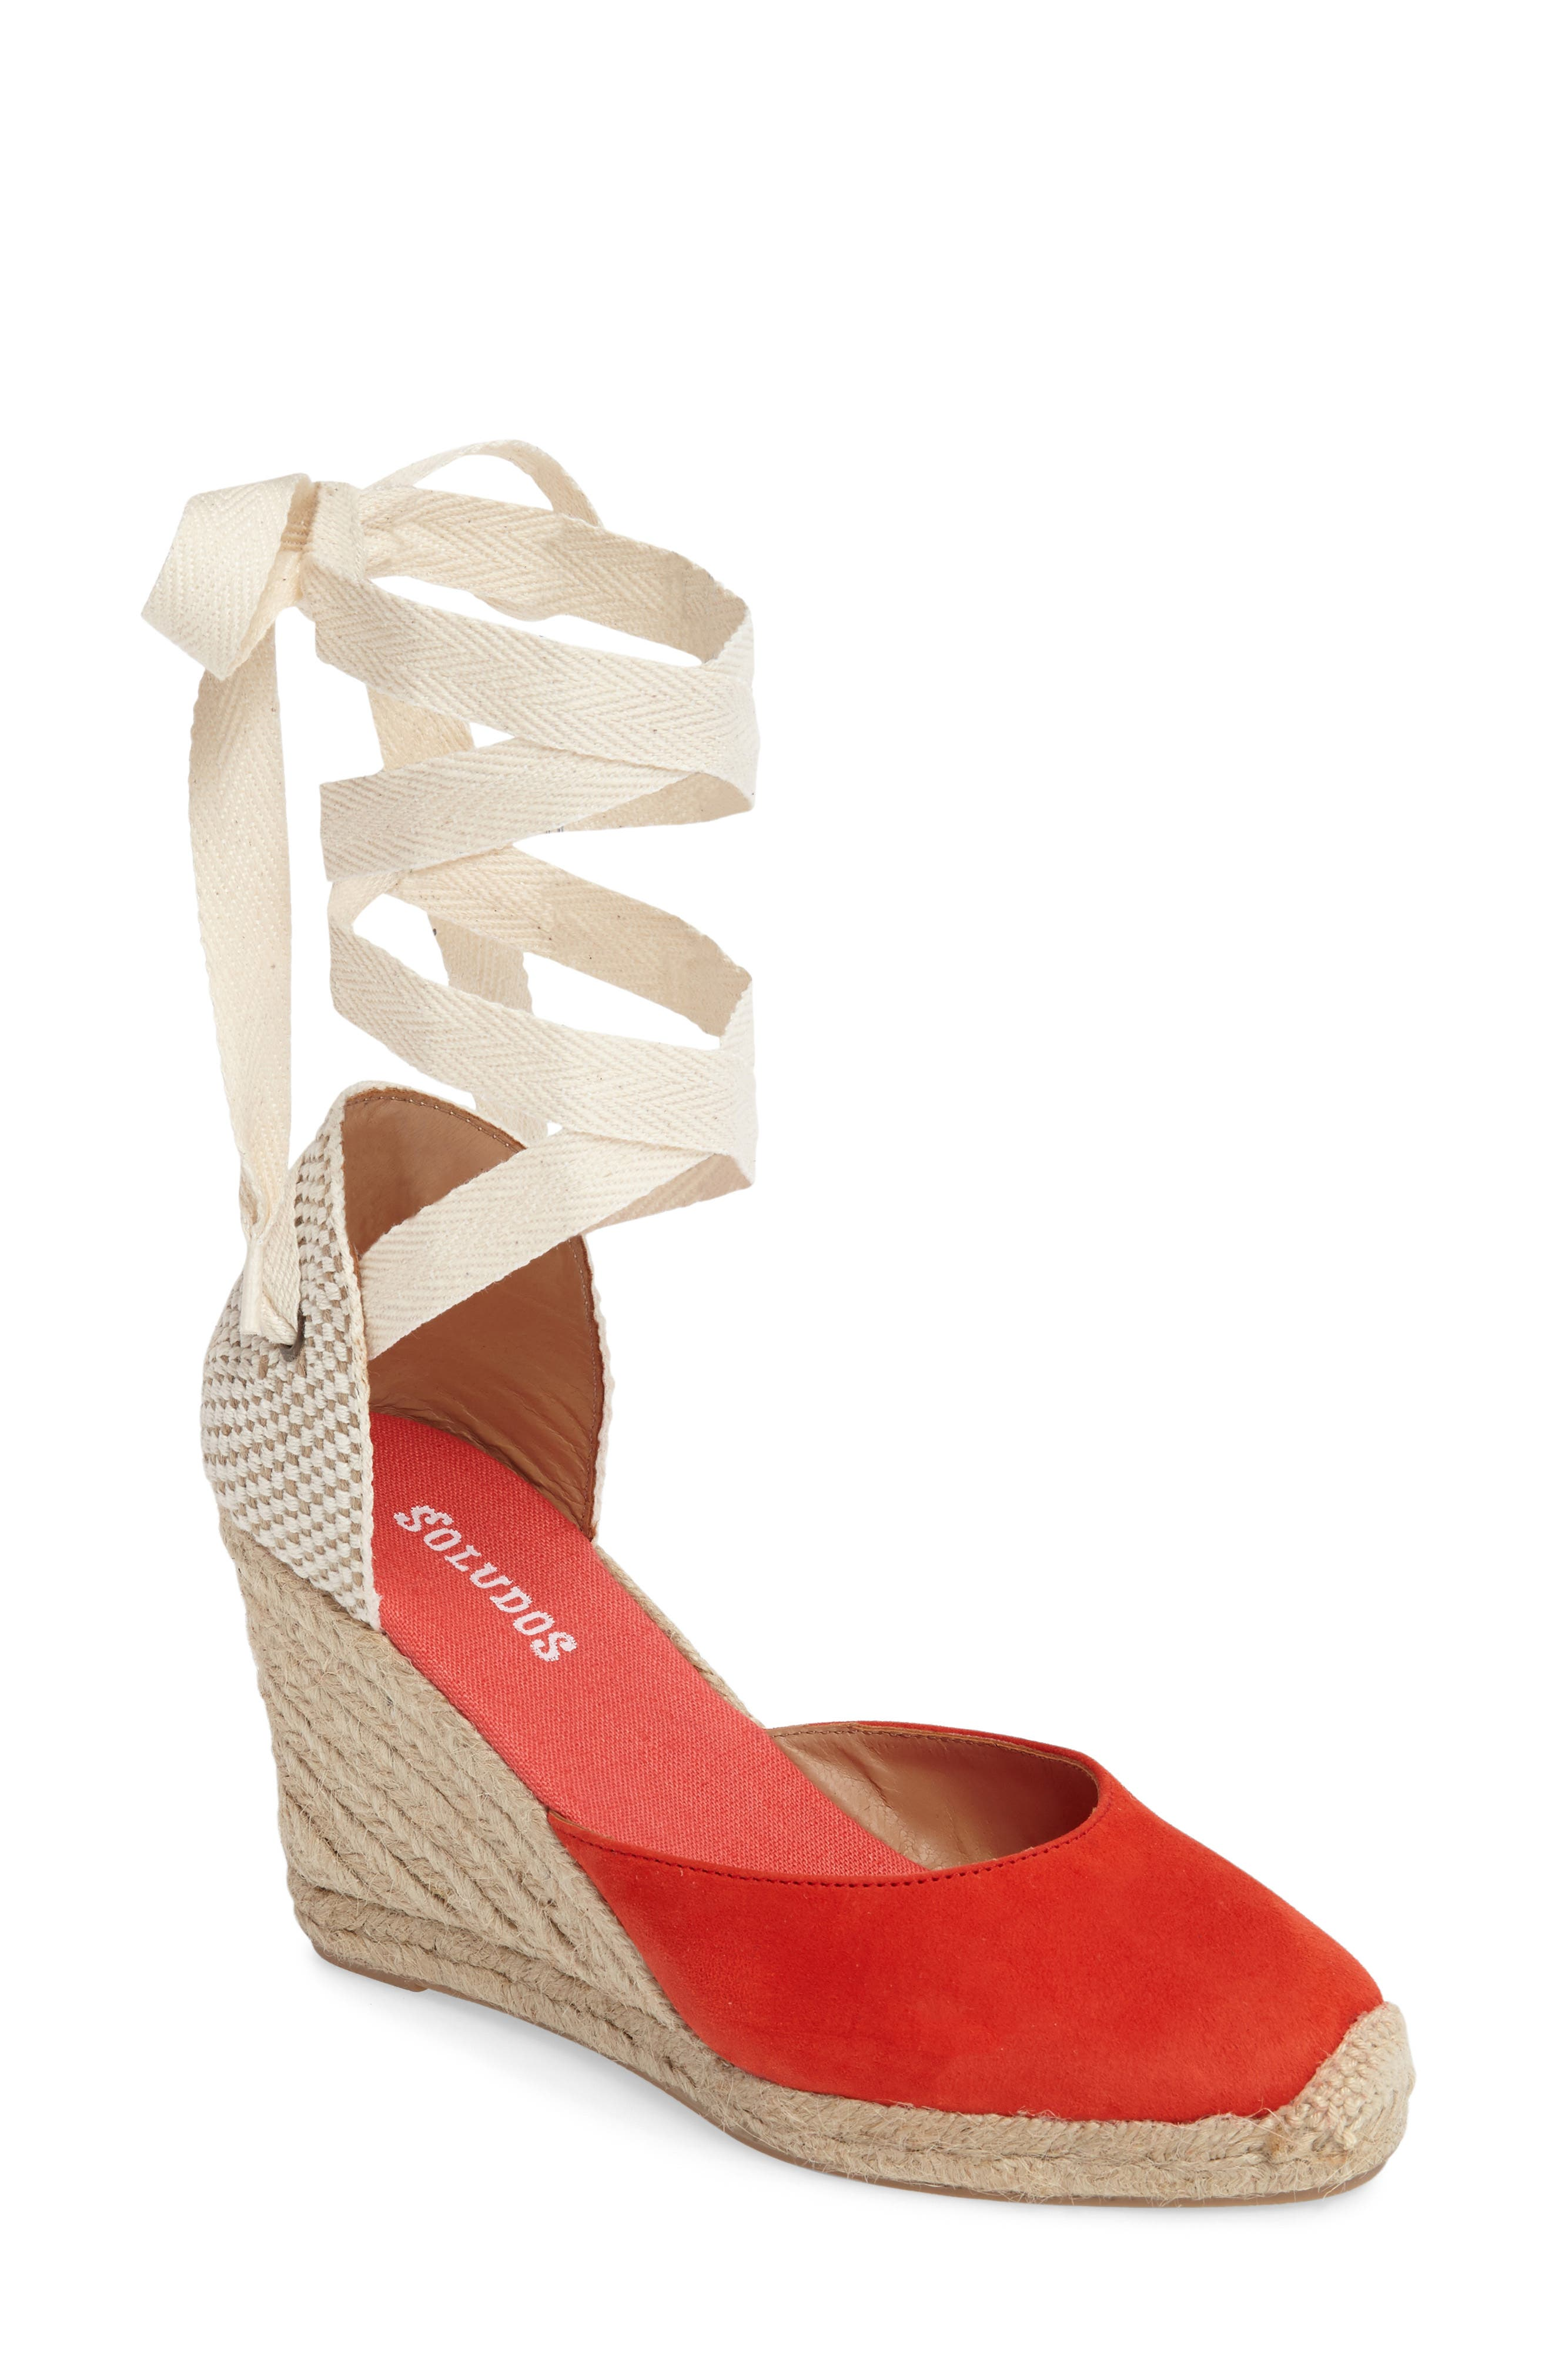 Wedge Sandal,                         Main,                         color, Fire Red Suede